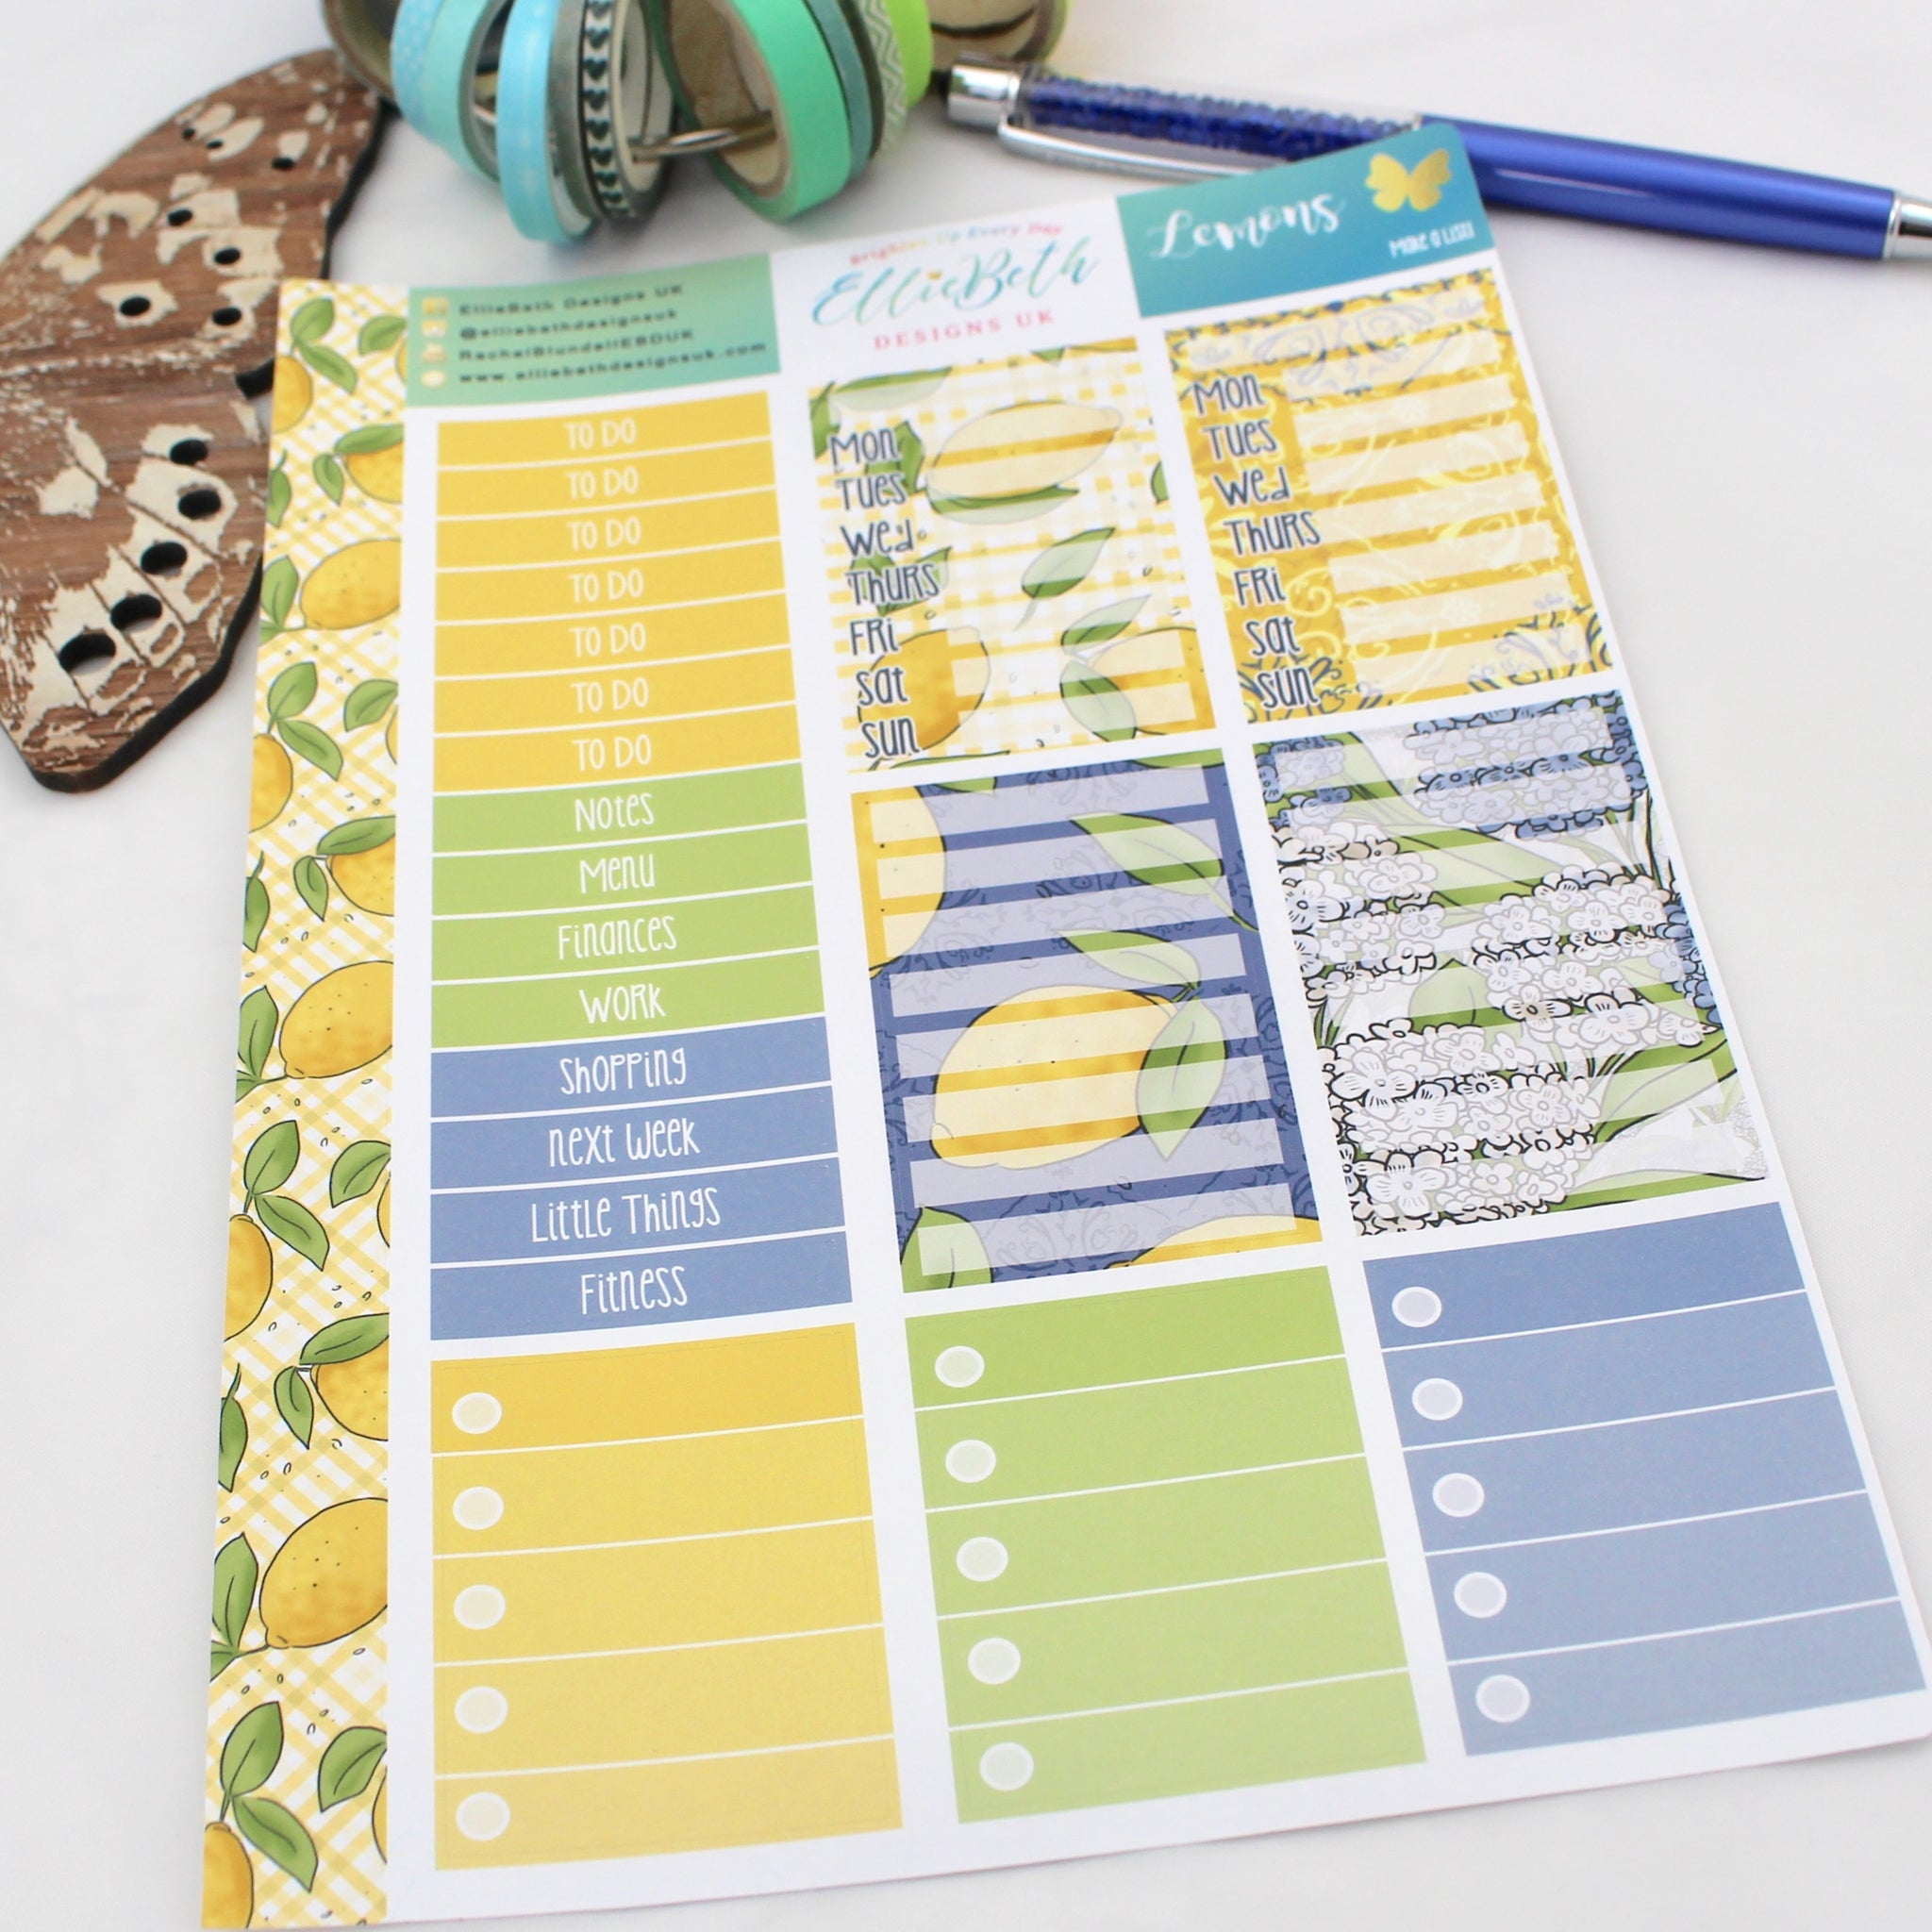 Lemons - Make a List Sheet -  A5 binder ready planner stickers - EllieBeth Designs UK